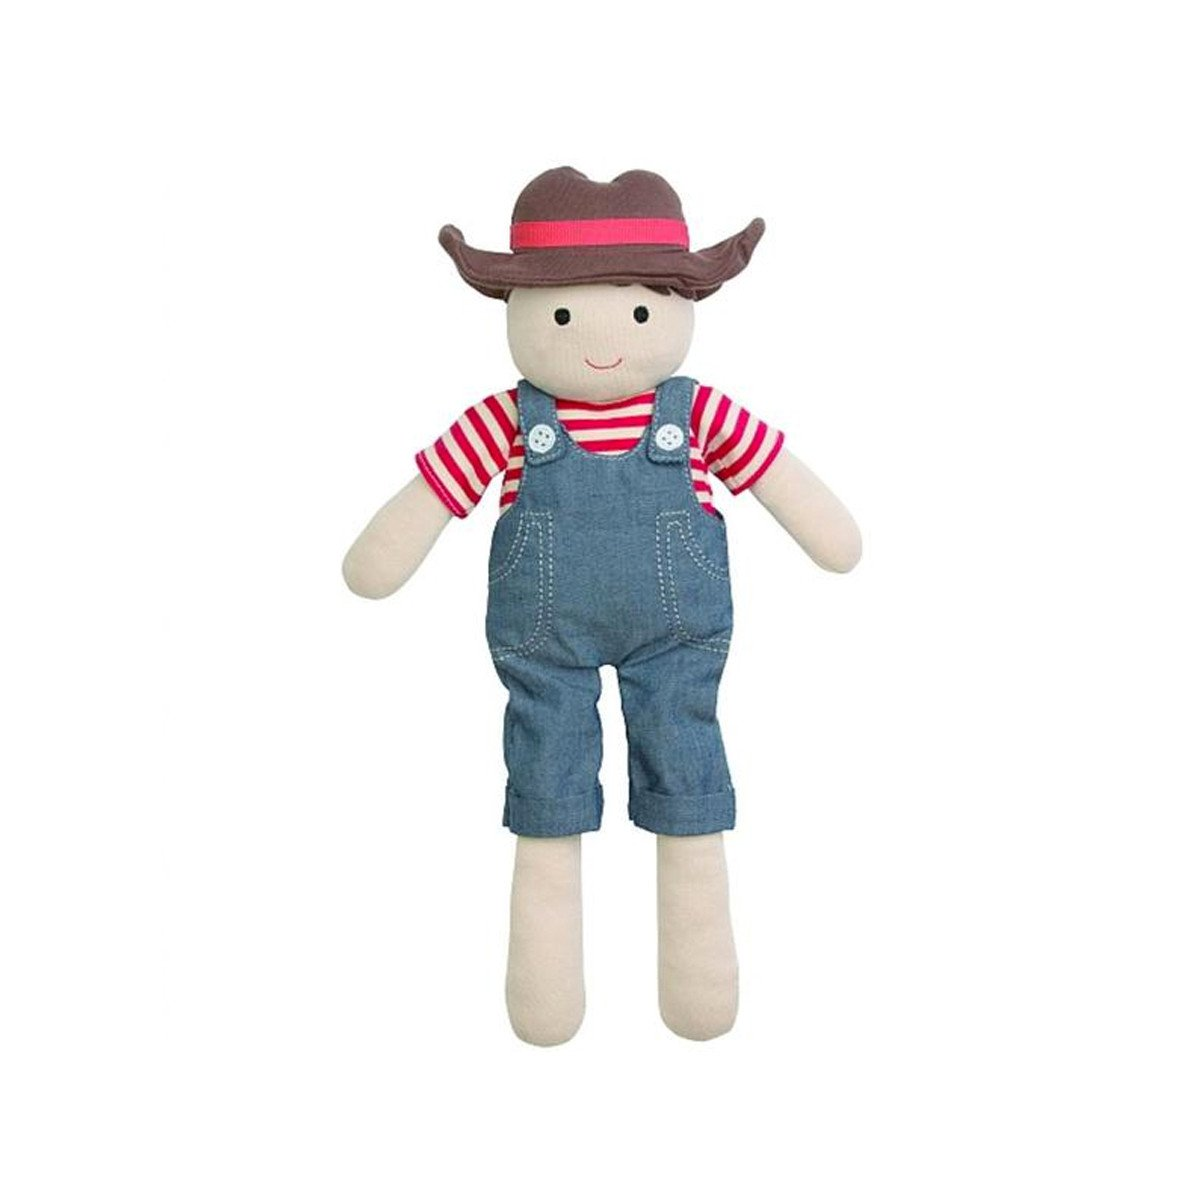 Apple Park Organic Plush Toy  Barnyard Billie - Apple Park Organic - Little Earth Nest - 4